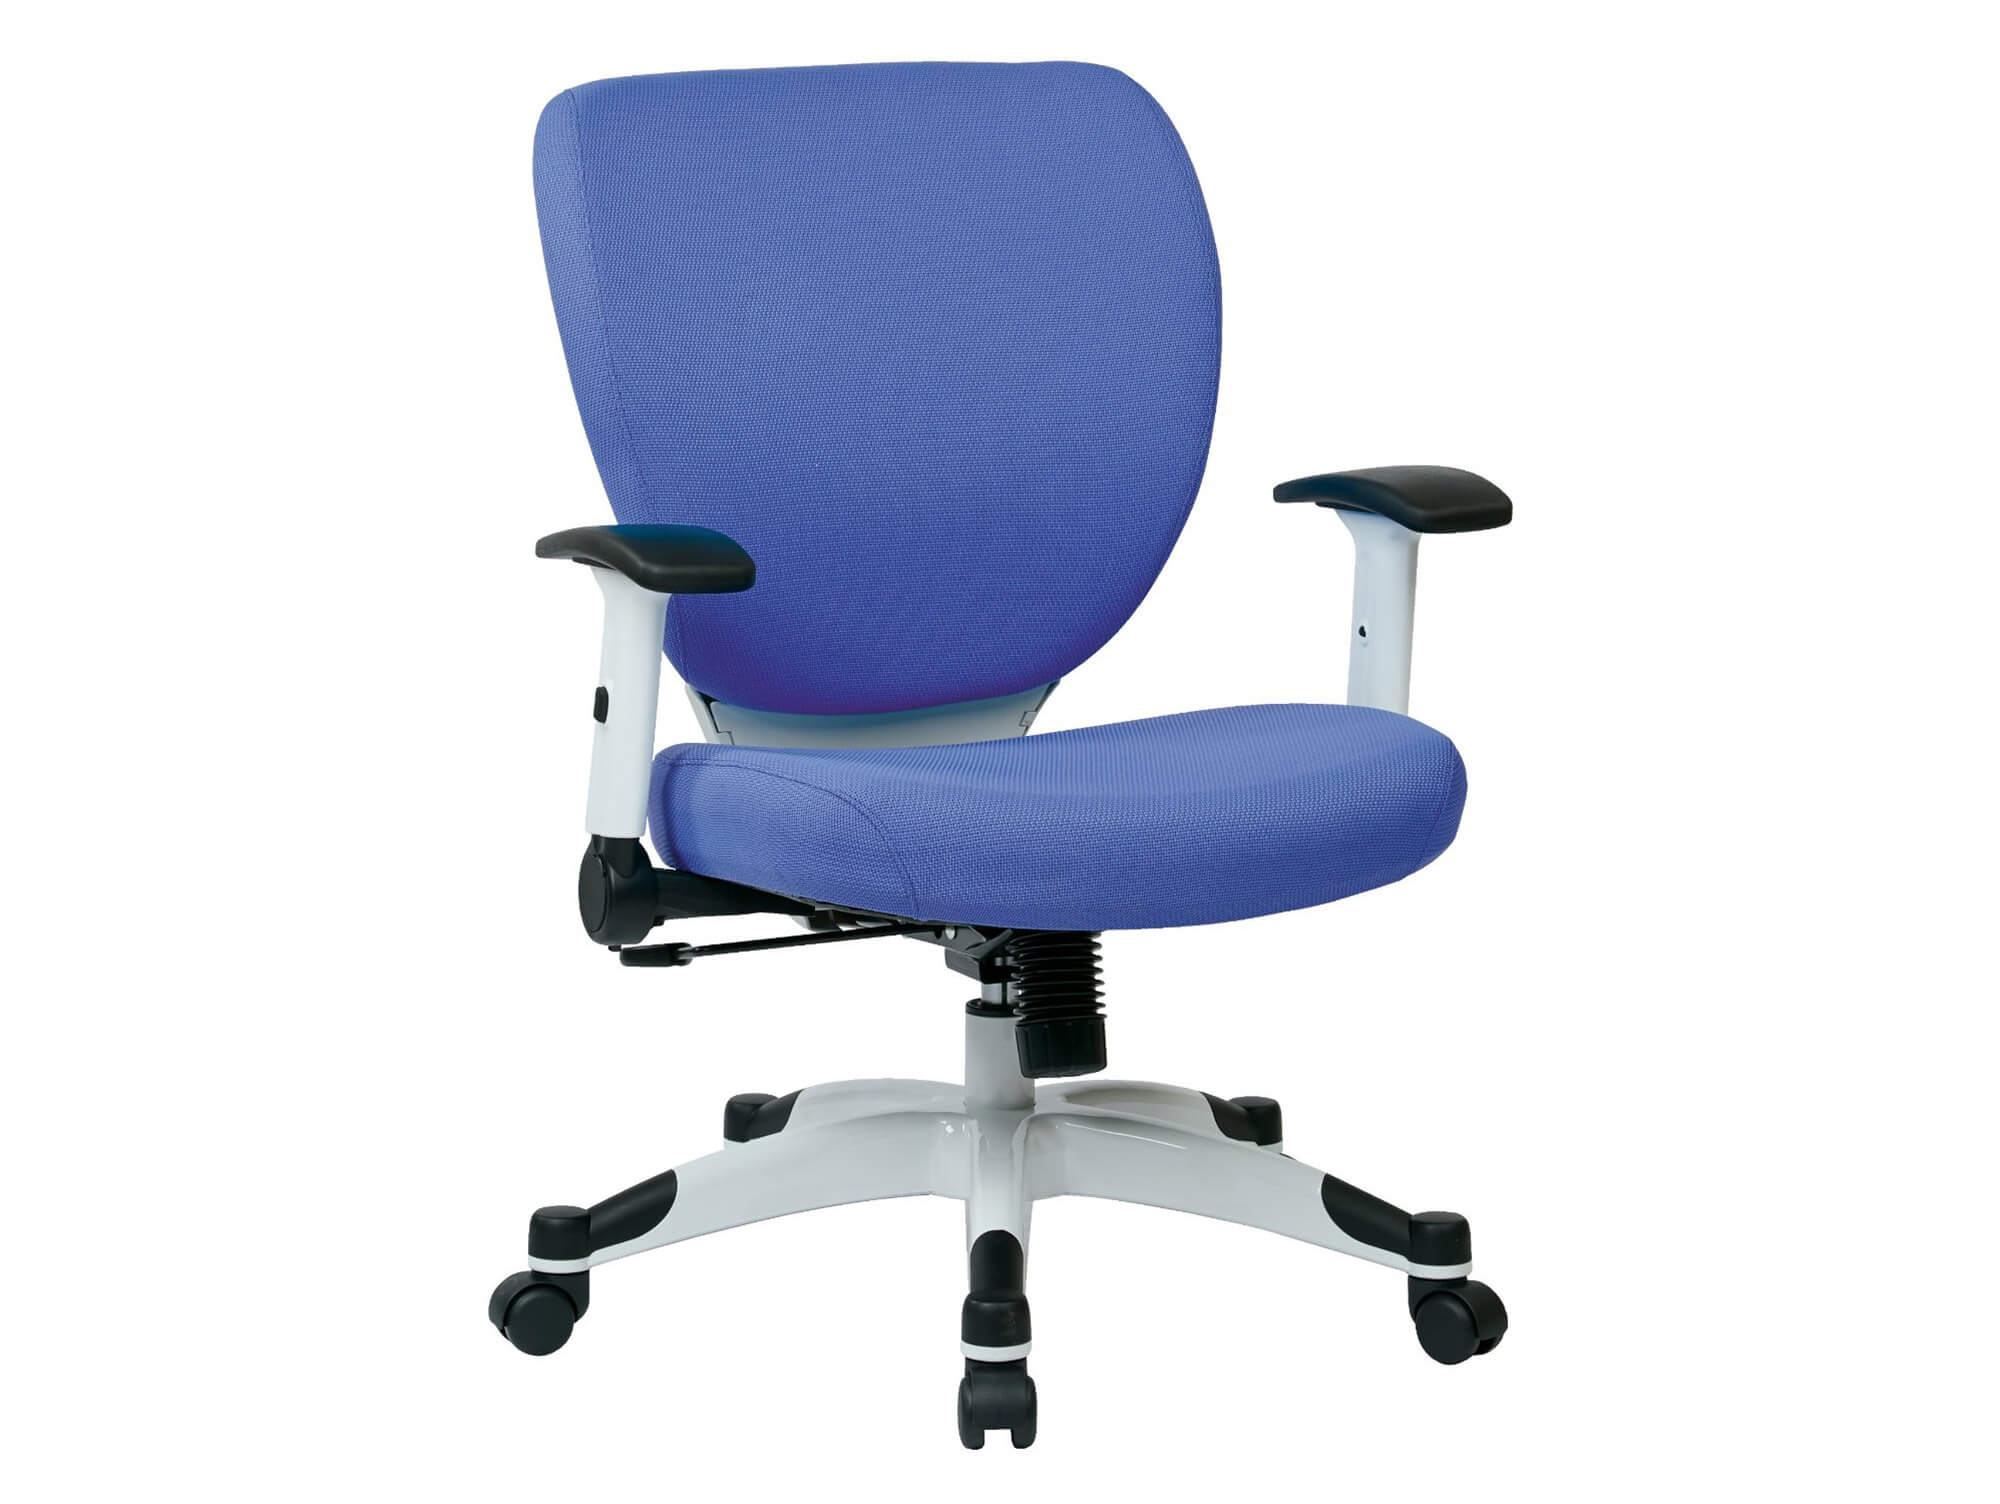 Office task chairs CUB 5200W 5819 PSO